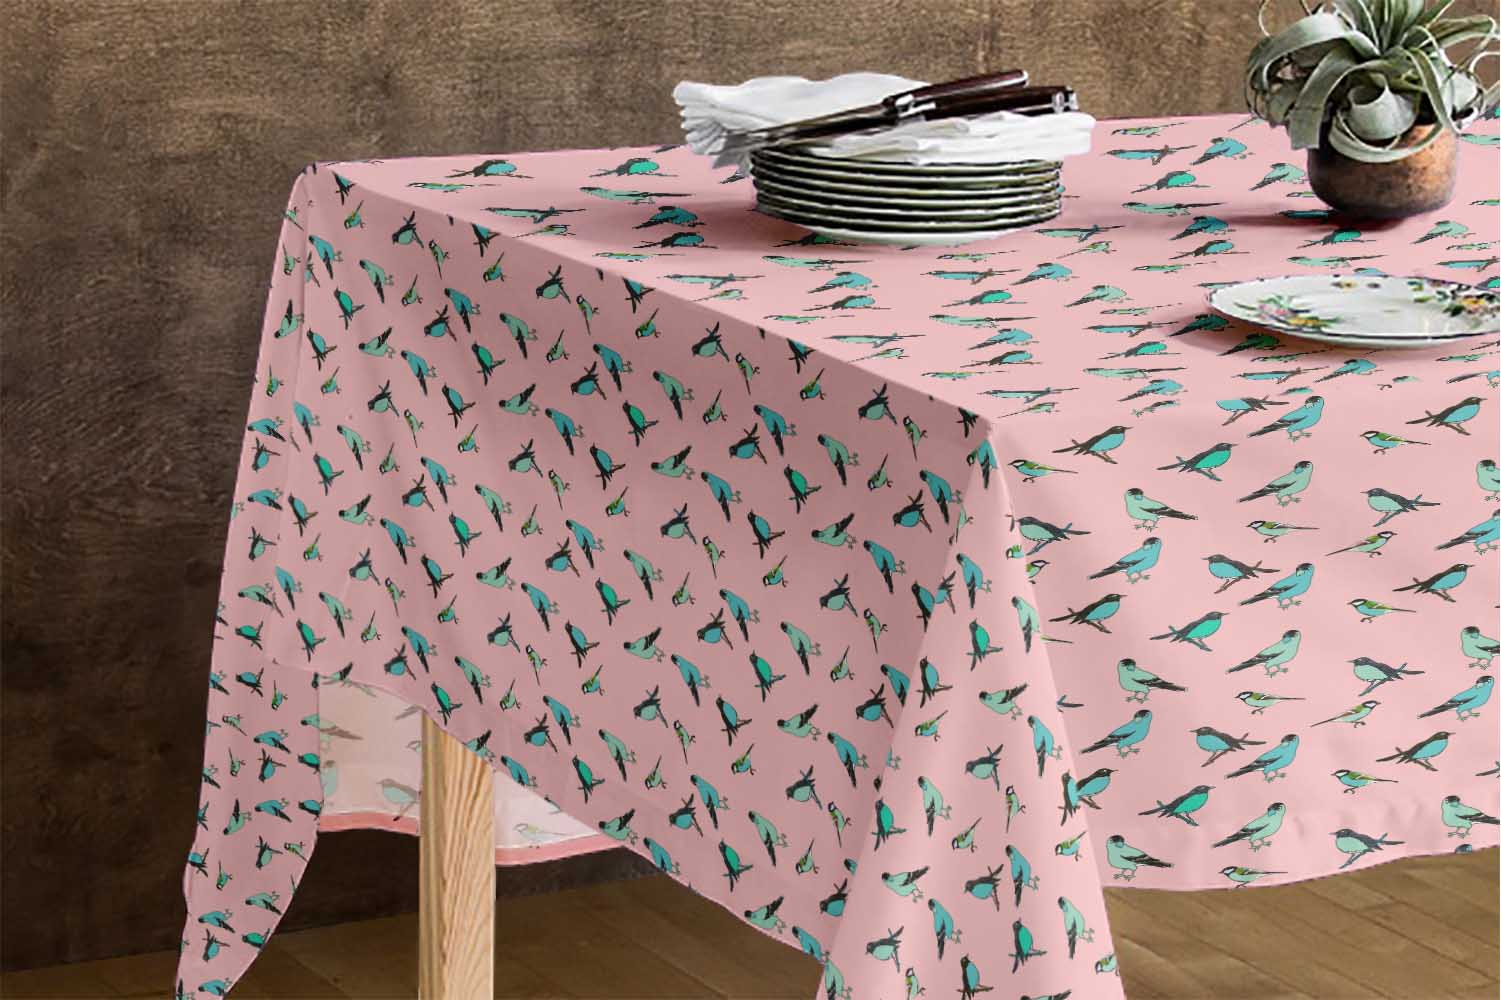 Artistic Outdoor Dining Table Cover